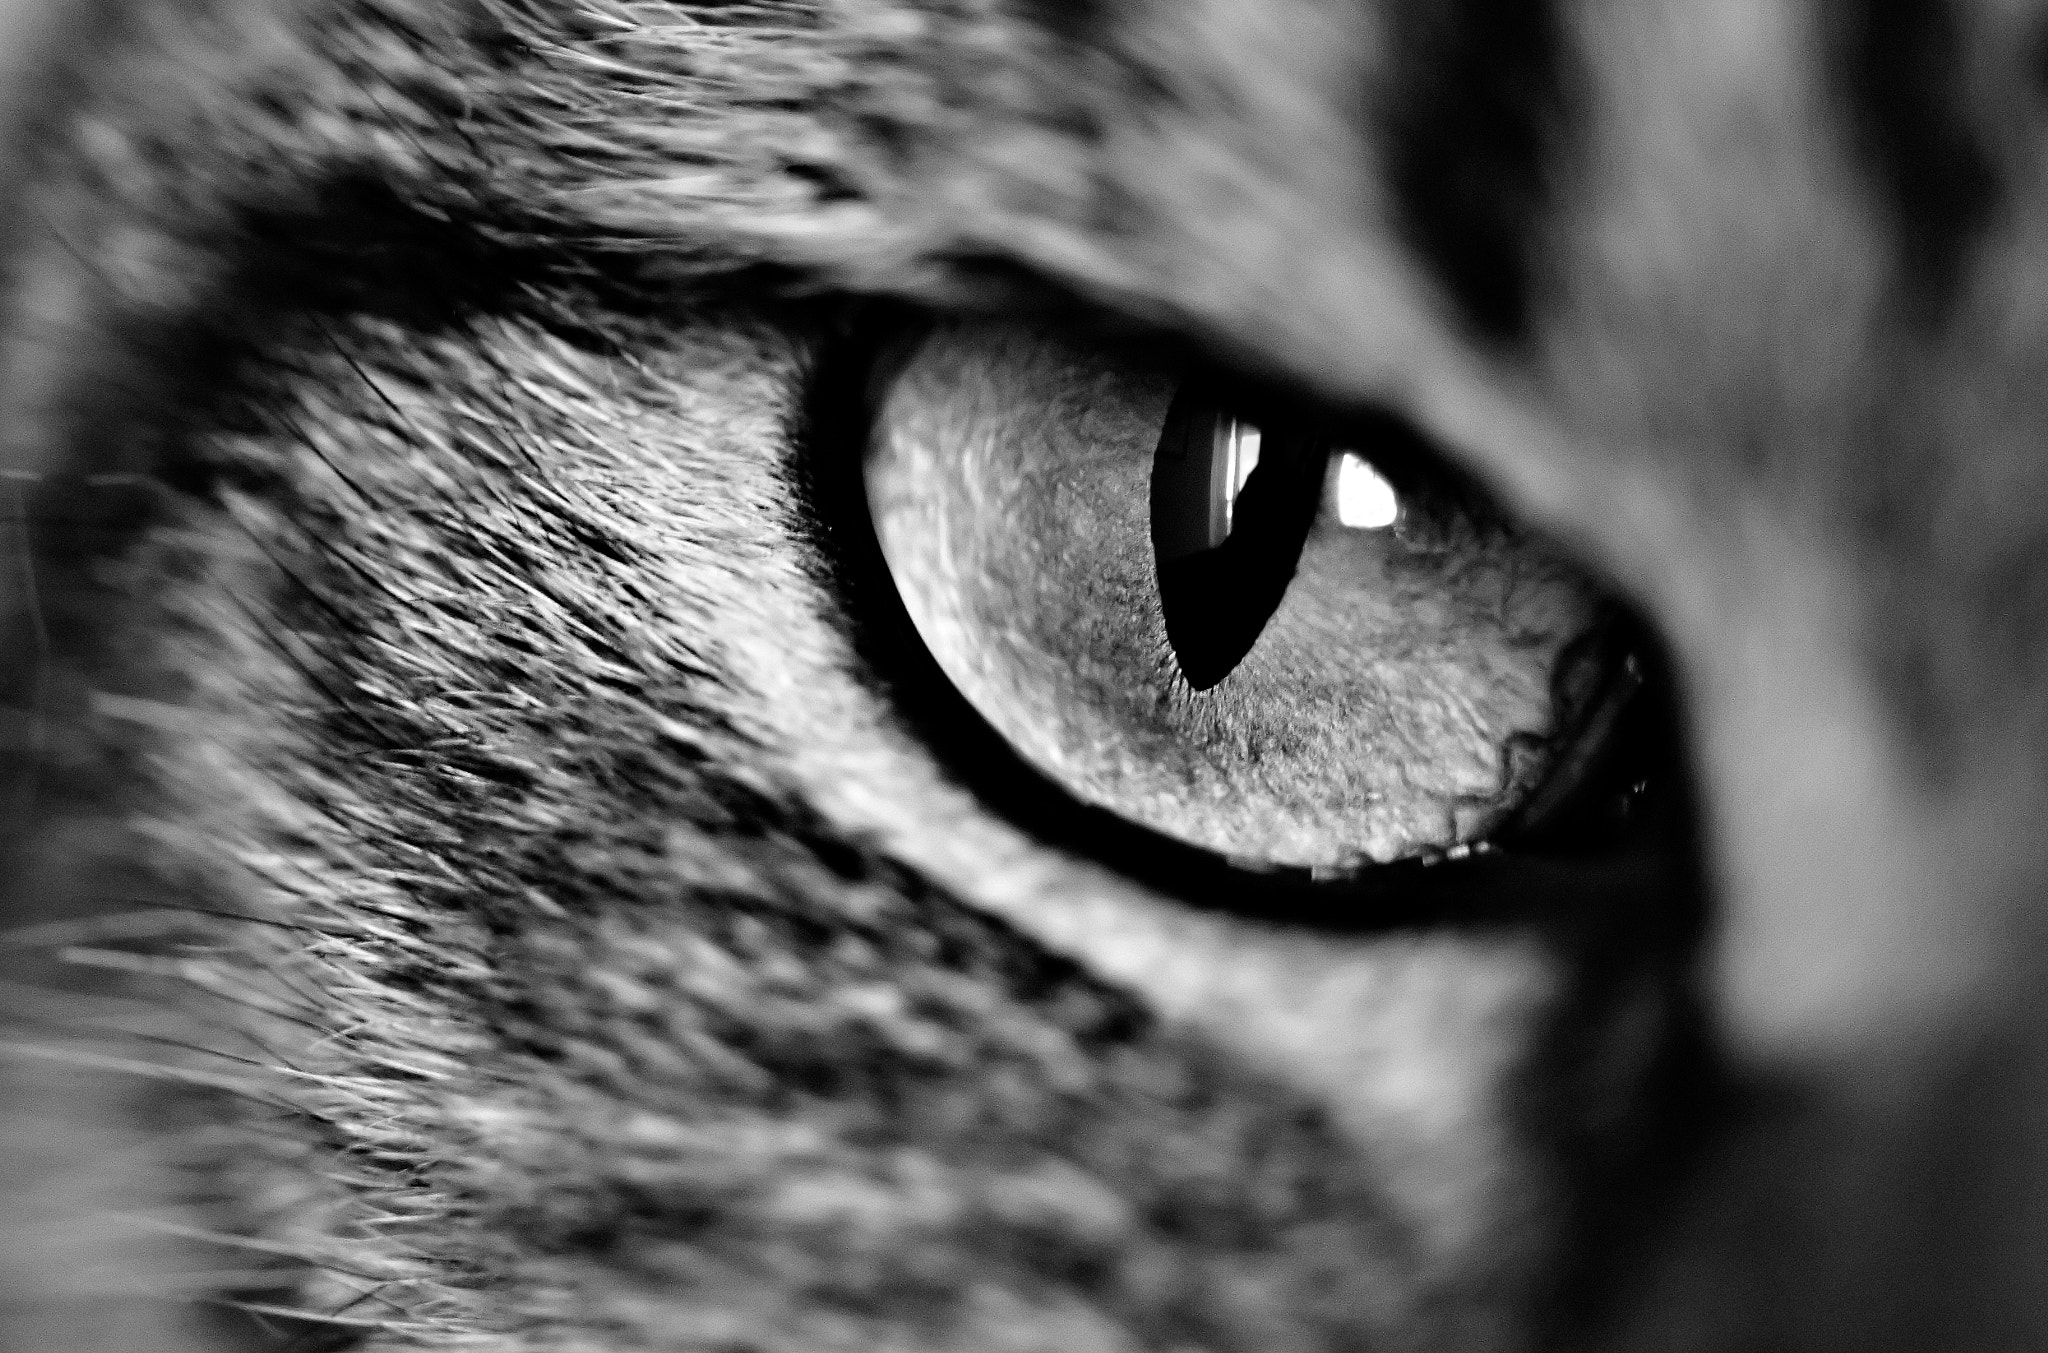 Photograph cataract by Charlie Man on 500px